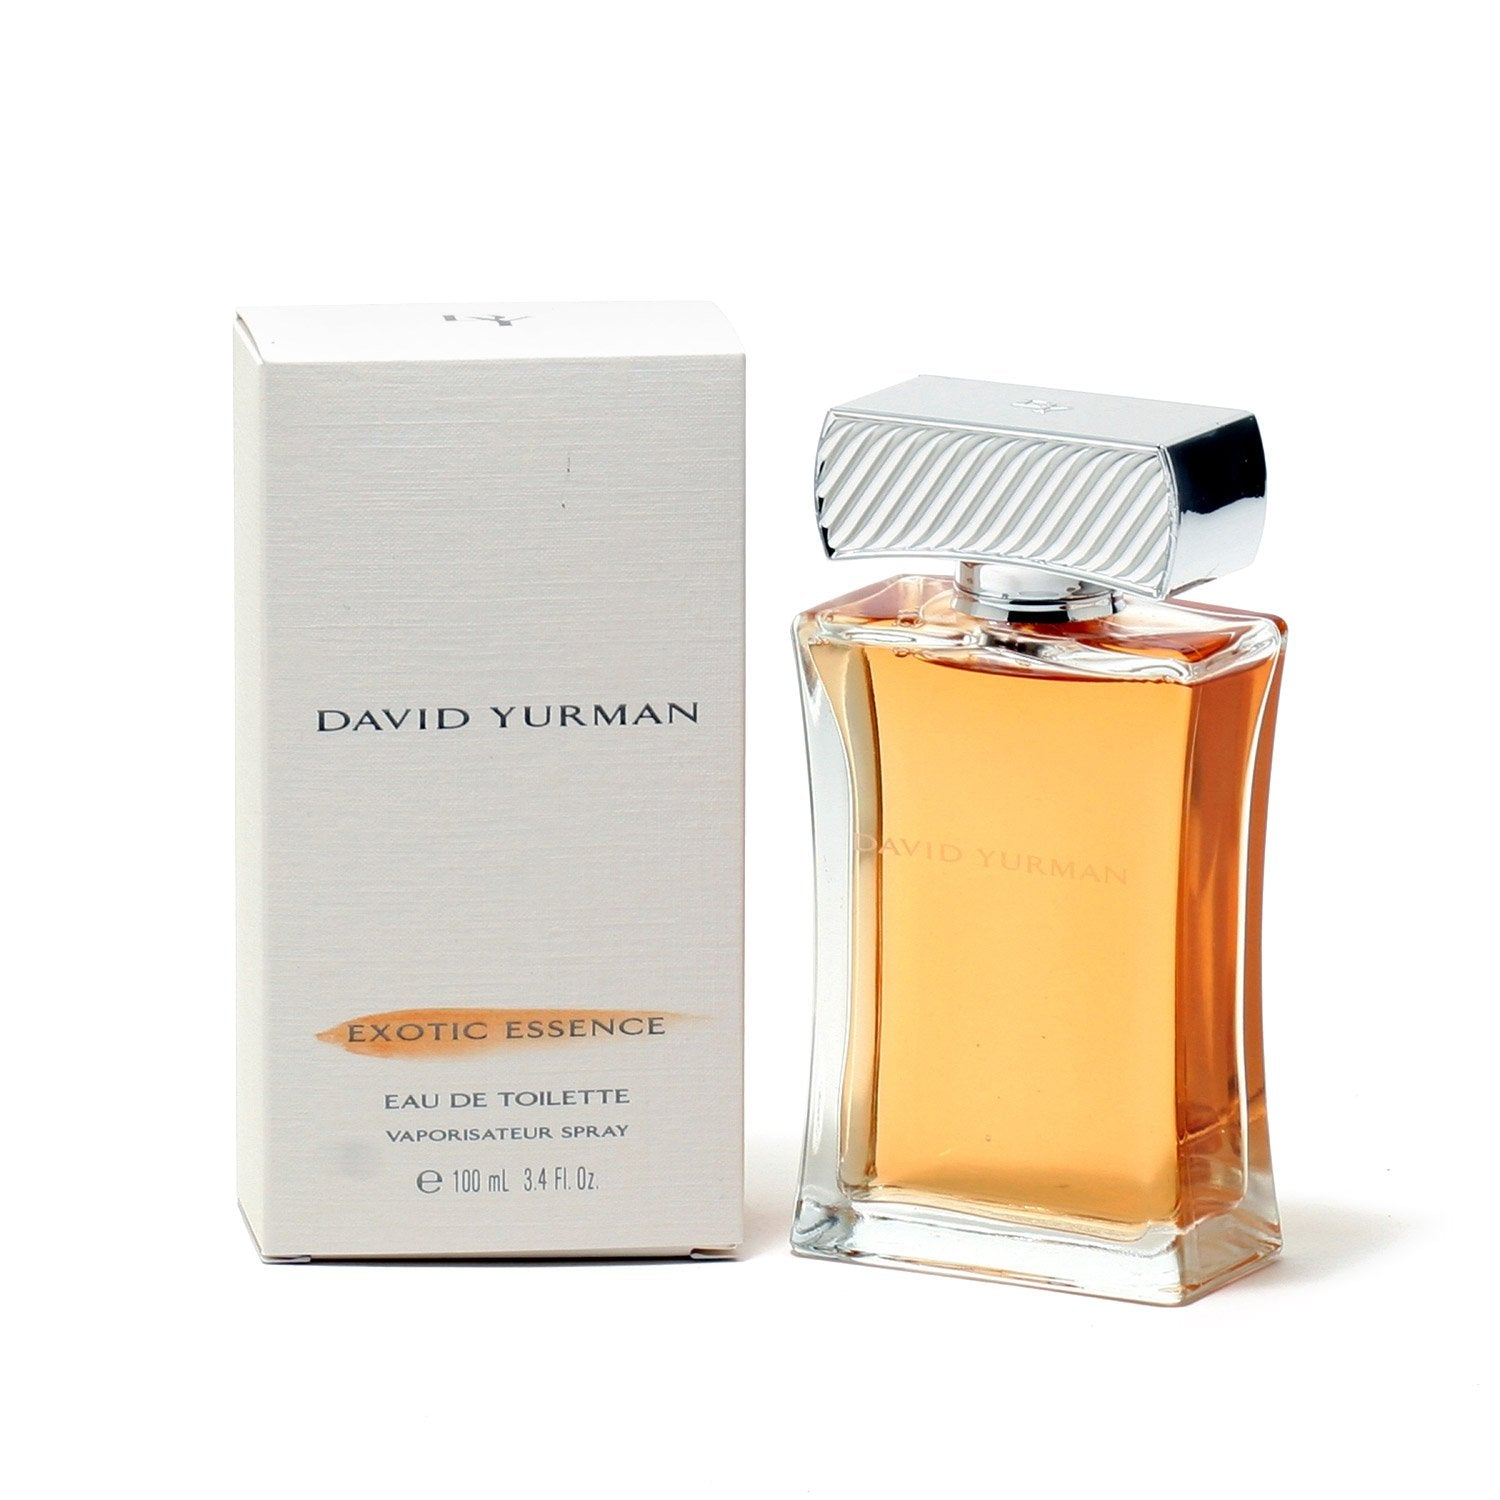 Perfume - DAVID YURMAN EXOTIC ESSENCE FOR WOMEN - EAU DE TOILETTE SPRAY, 3.4 OZ